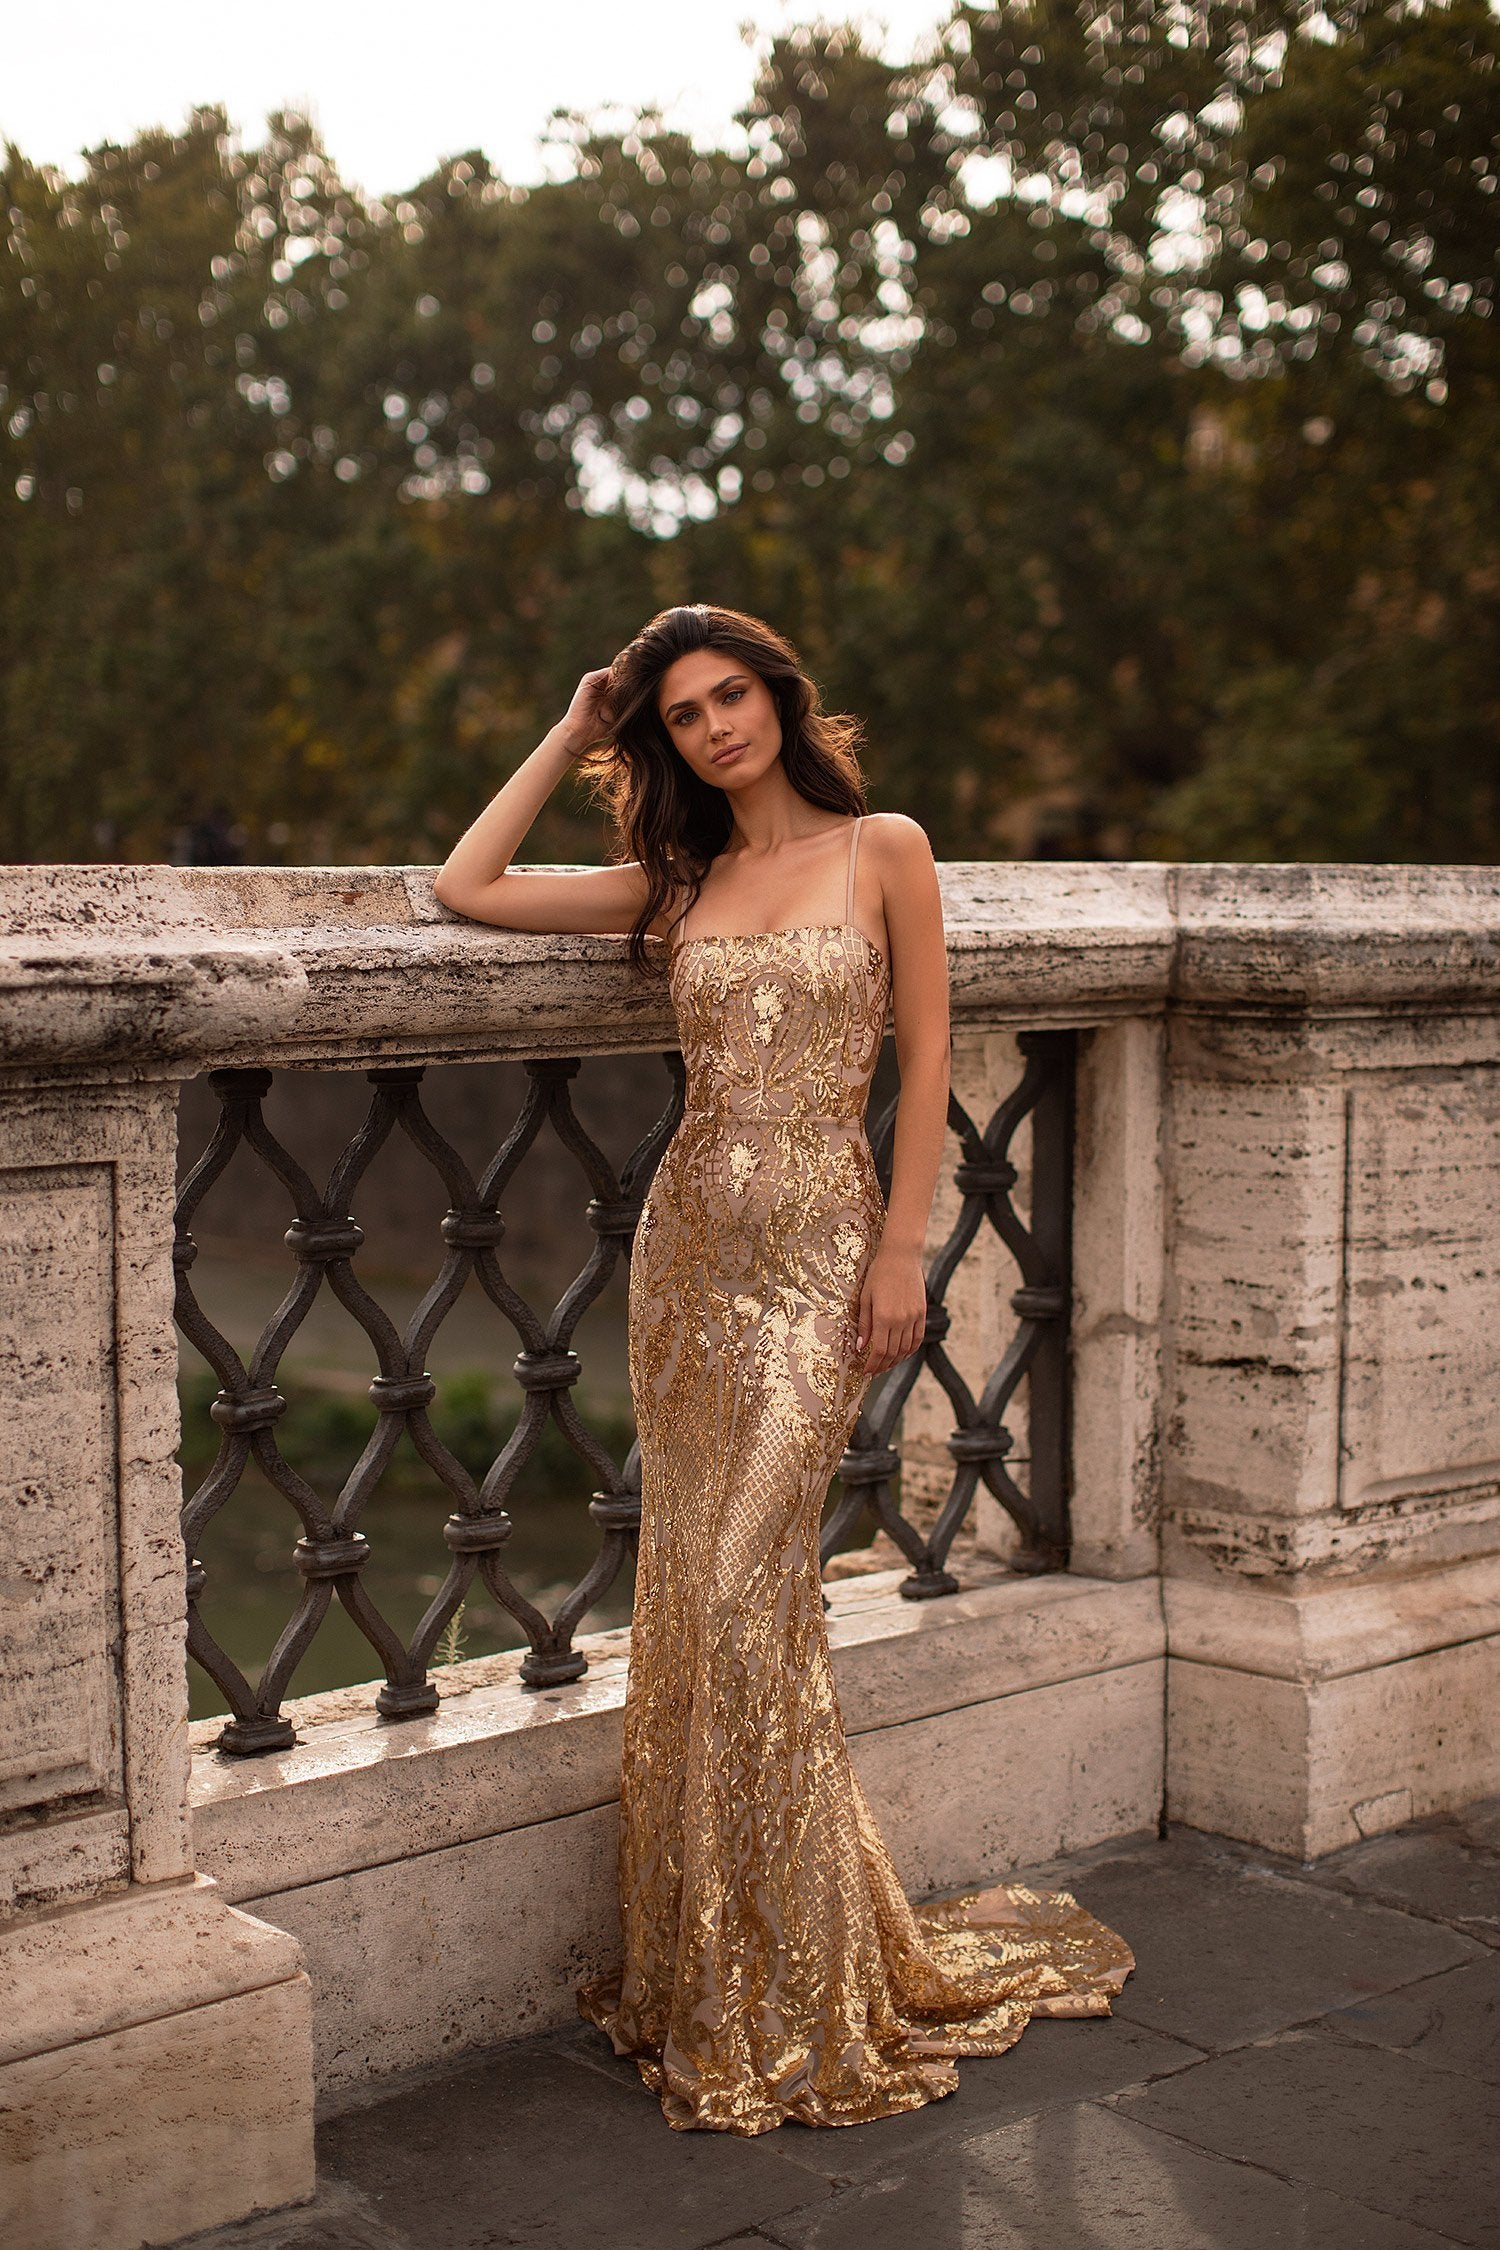 Sonia - Gold Sequin Mermaid Gown with Straight Neckline & Lace-Up Back